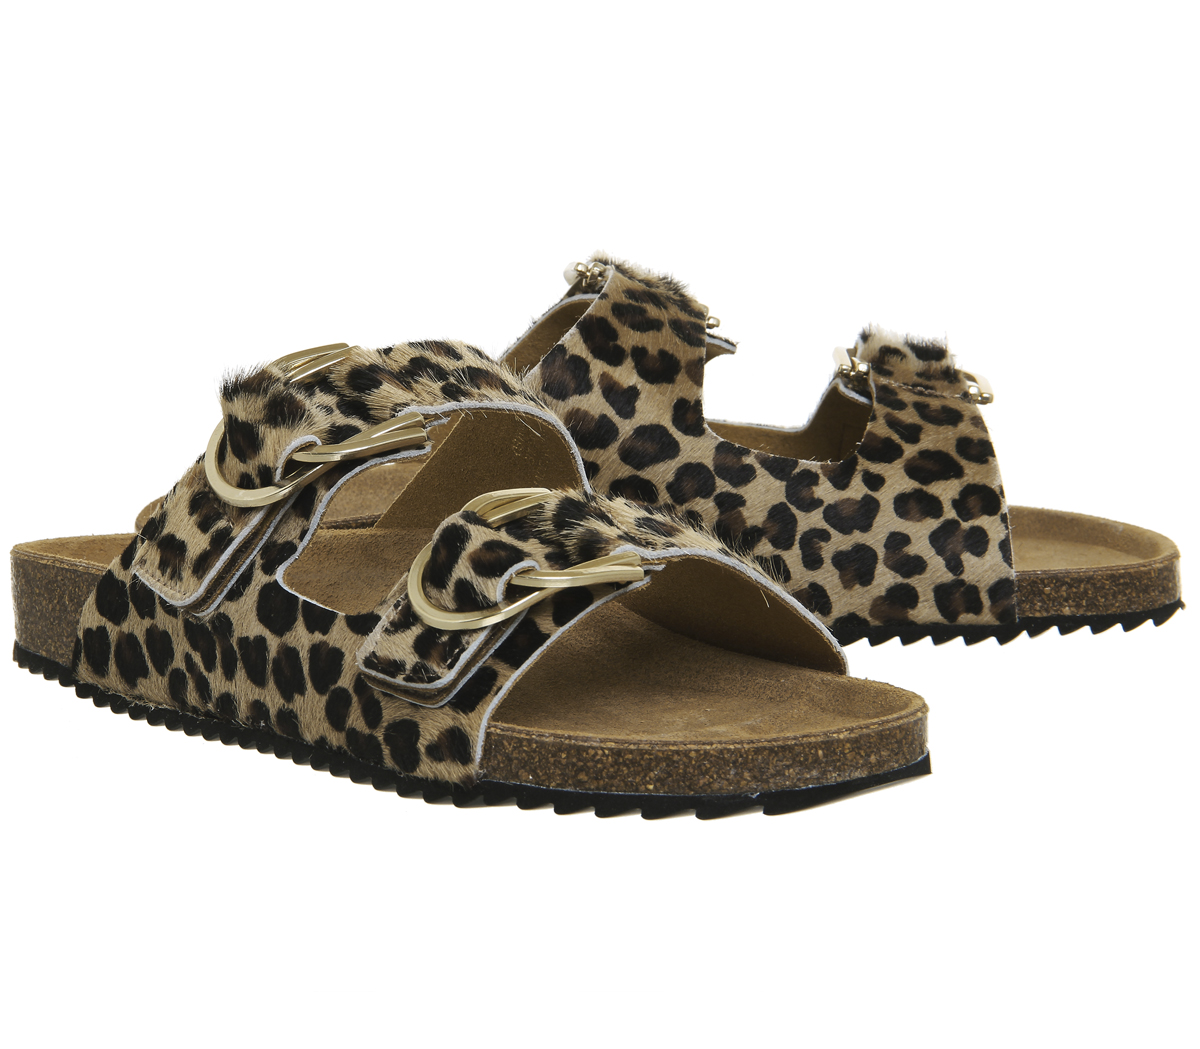 Damenschuhe Office Supersonic Sandales Footbed Sandales LEOPARD COW HAIR GOLD HARDWARE Sandales Supersonic 6ac443